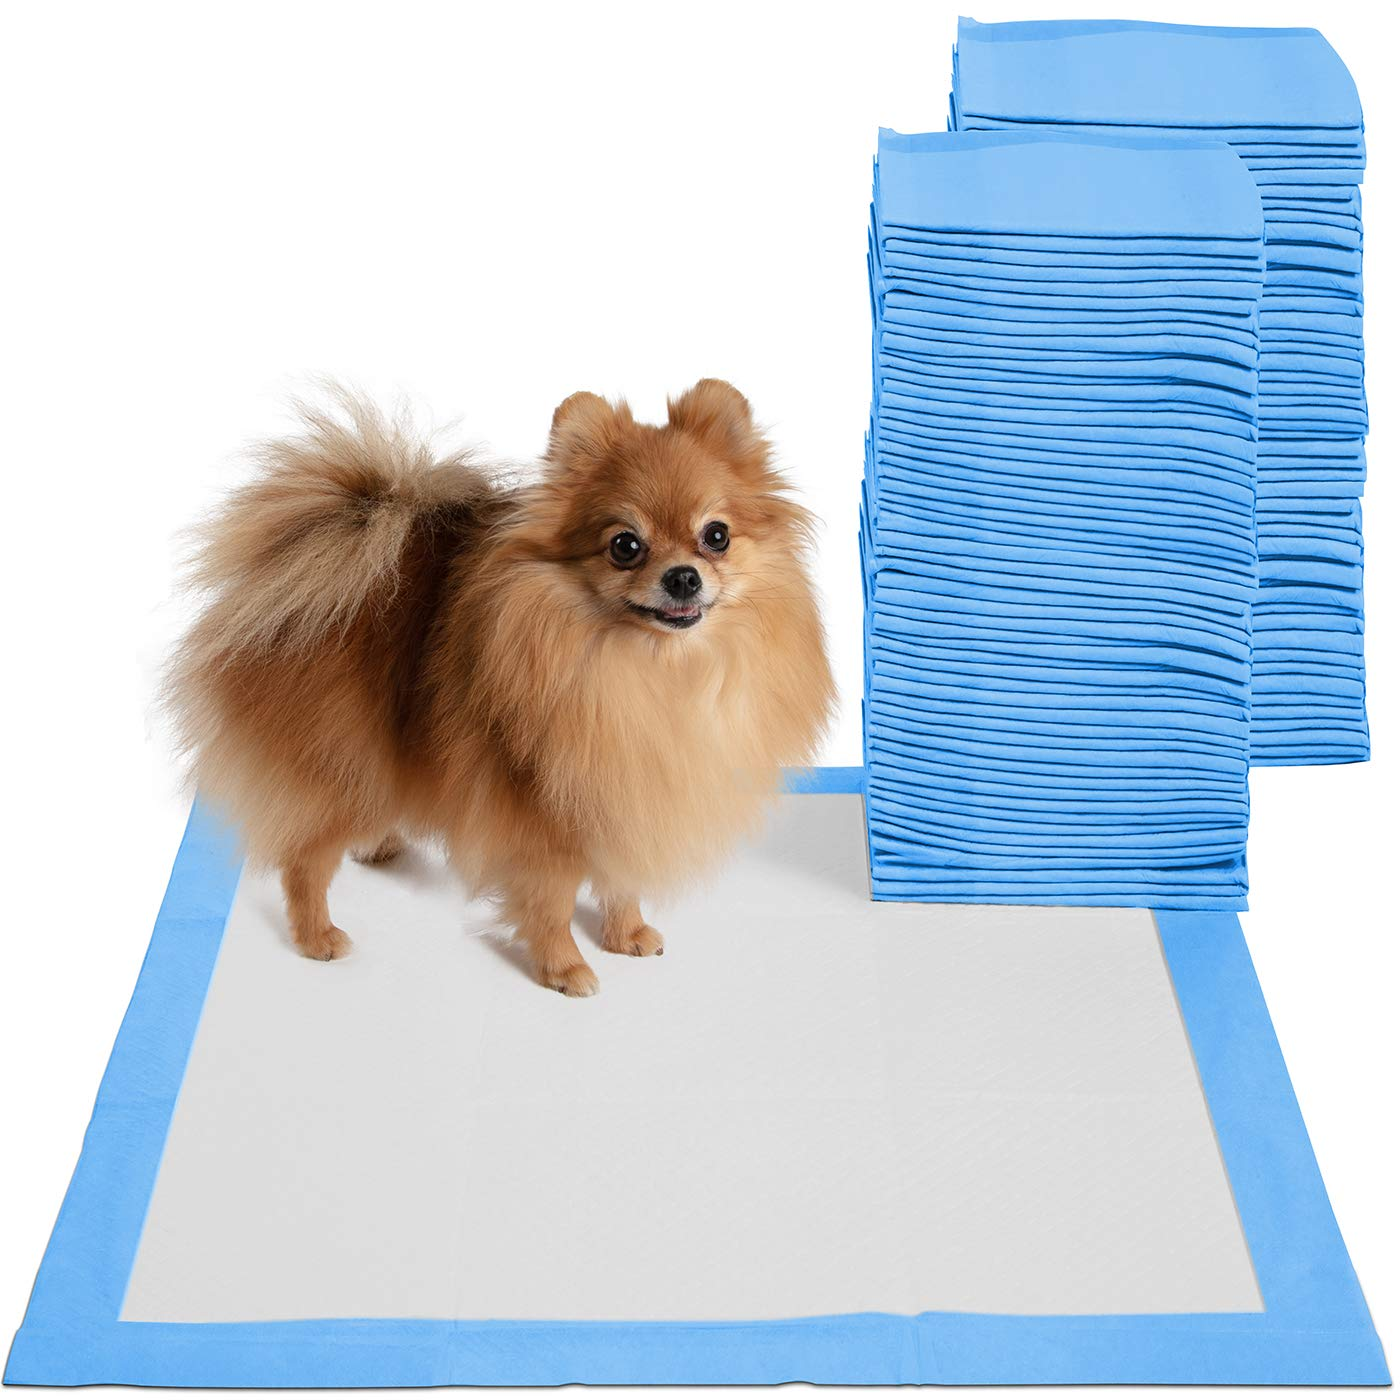 20 x 20 Pet Training Potty Pee Pads for Dogs and Cats – 30, 100, and 150 Count (100 Count)